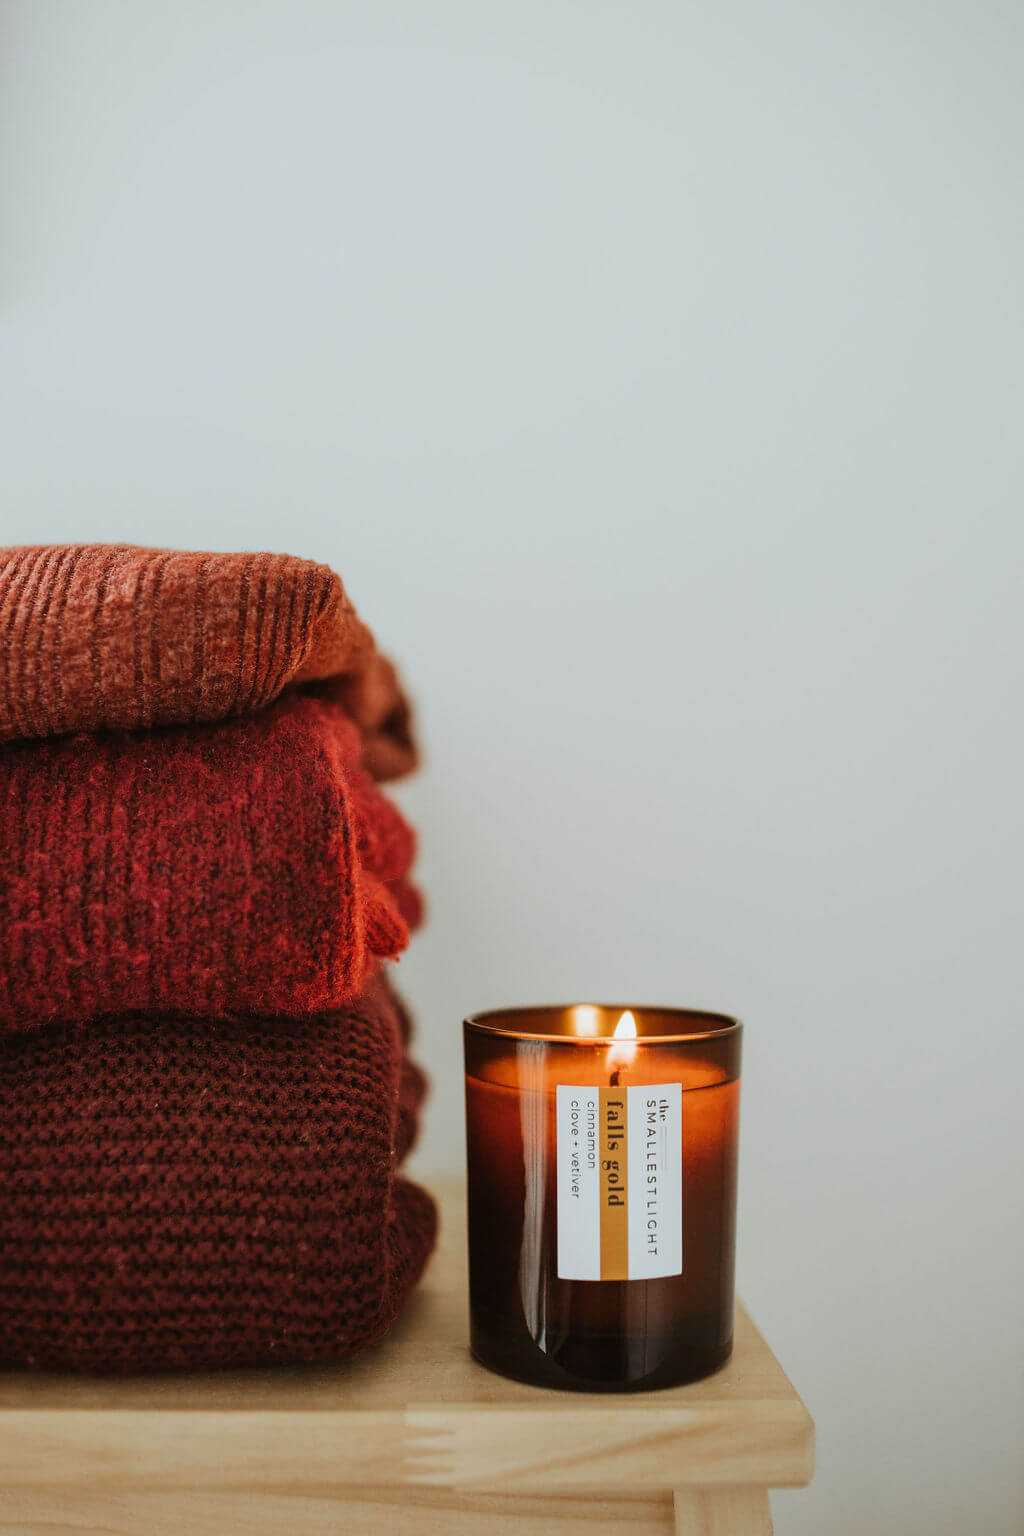 Natural Soy Candle for the Autumn Season